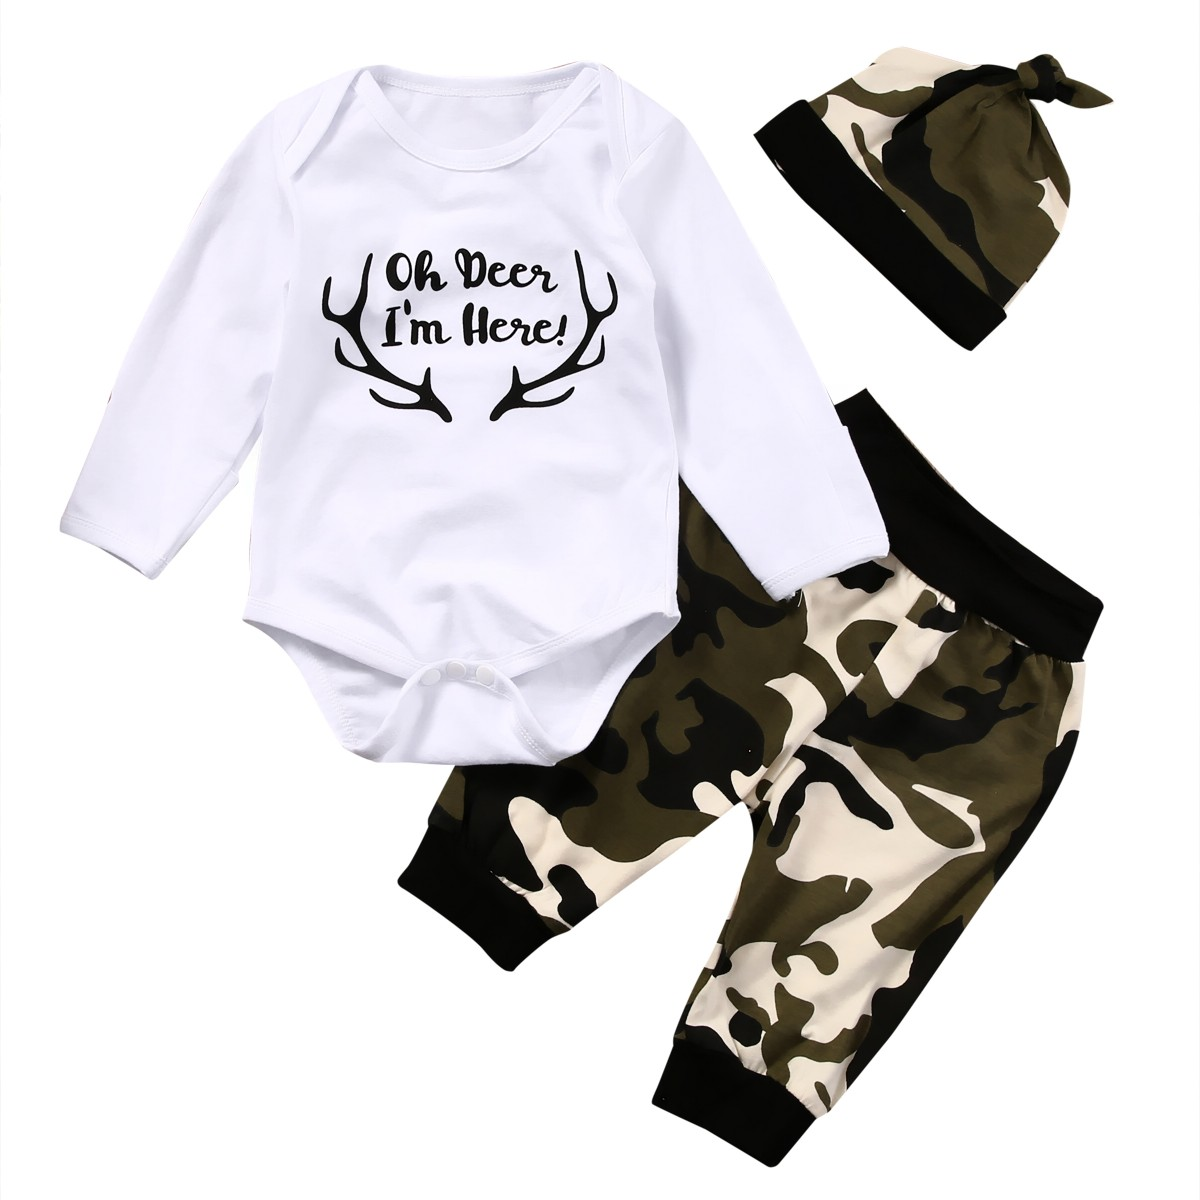 Newborn Kids Baby Boy Romper Tops+Camouflage Long Pants+Hat 3PCS Outfits Clothes